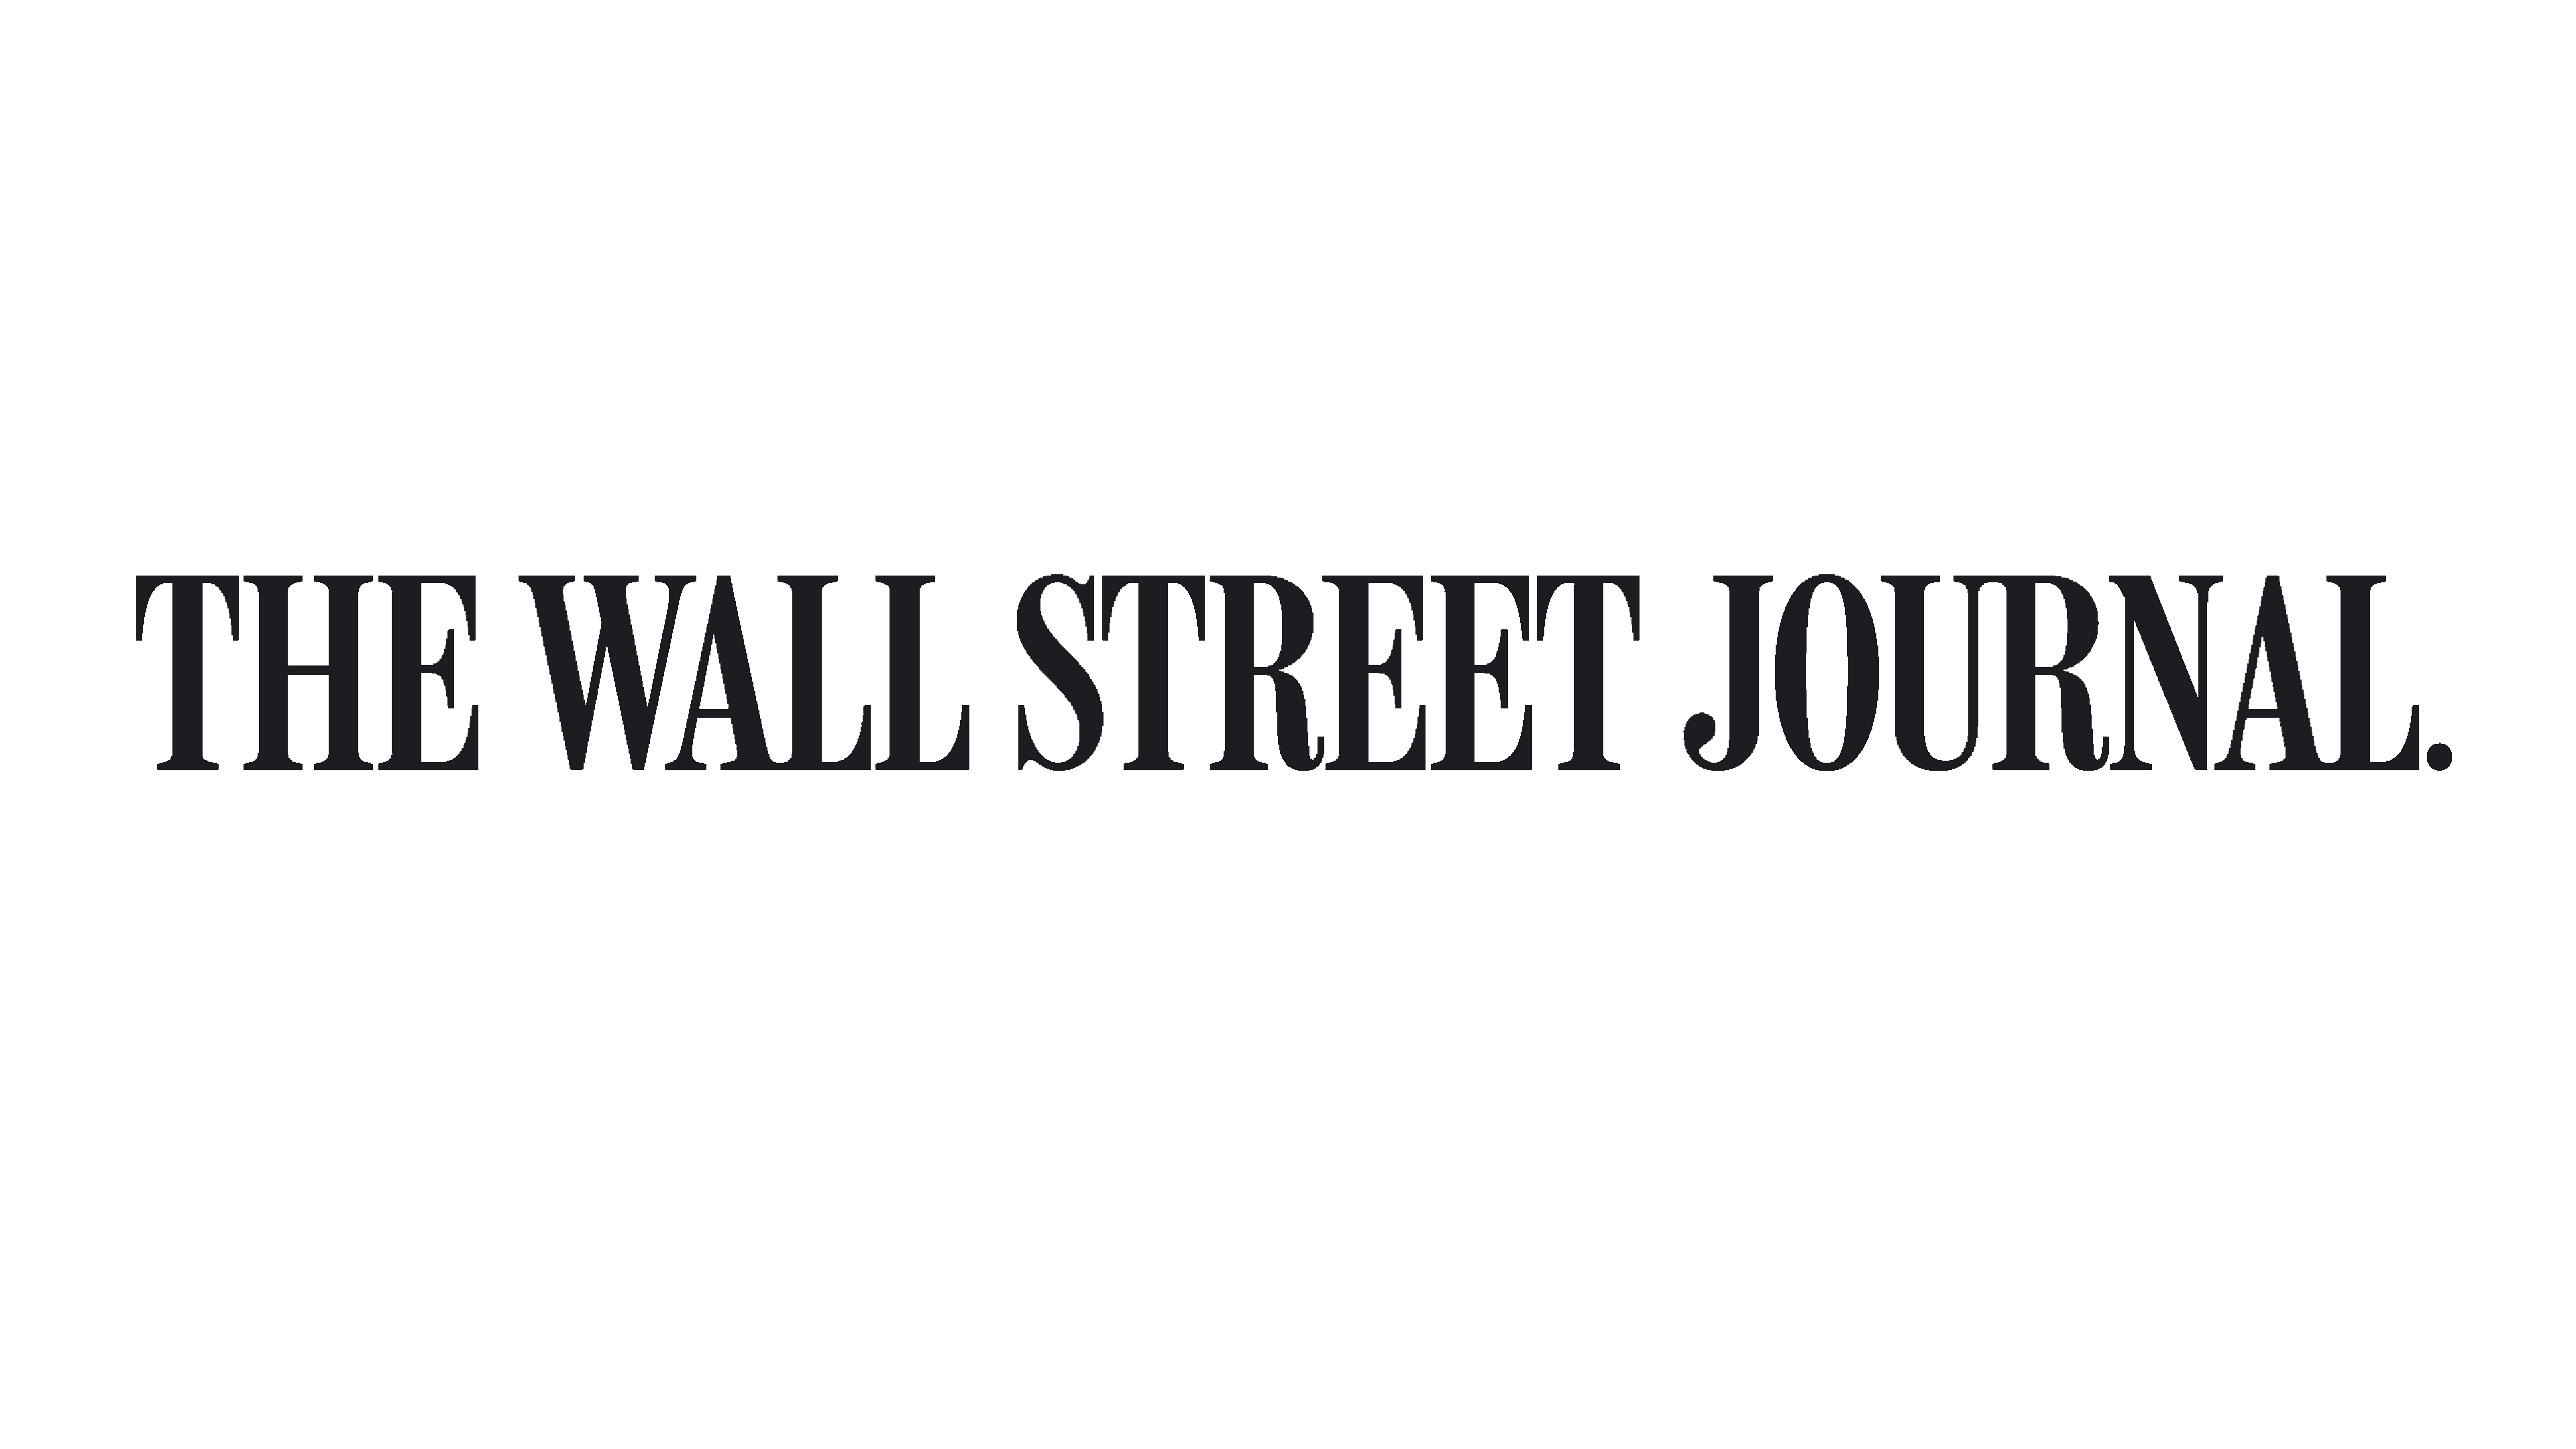 News outlet logo for favicons/wsj.com.png